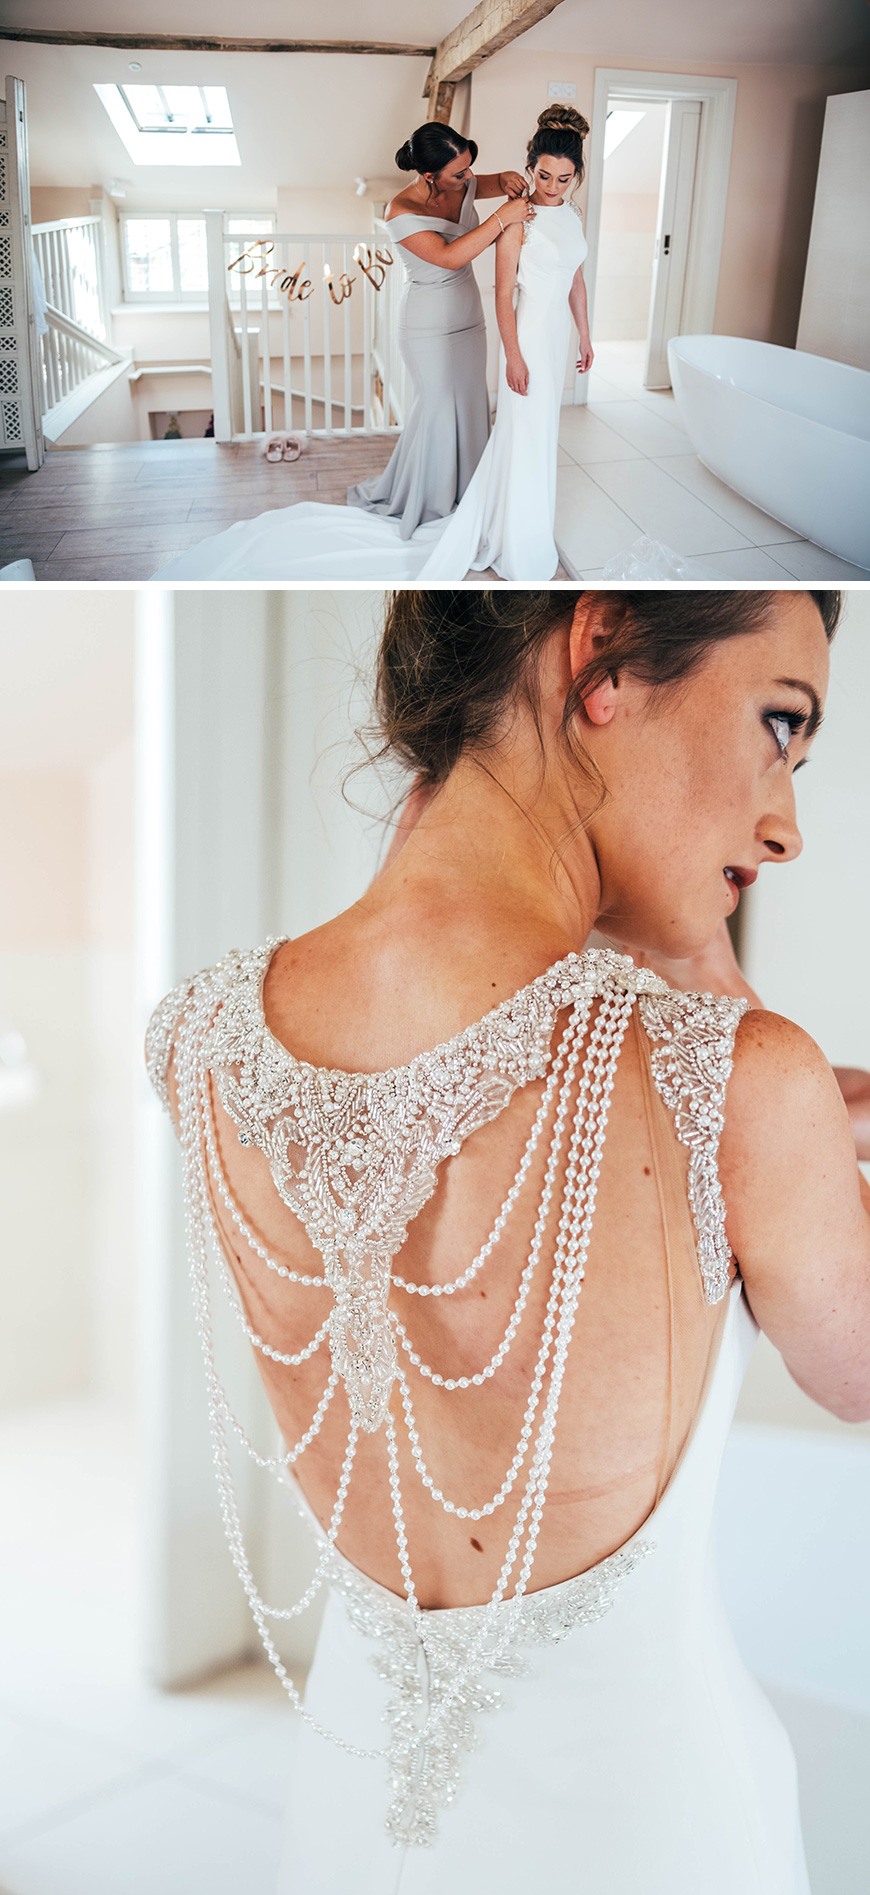 Real Wedding - Jessica and Jason's Fun-Filled Wedding at Gaynes Park | CHWV